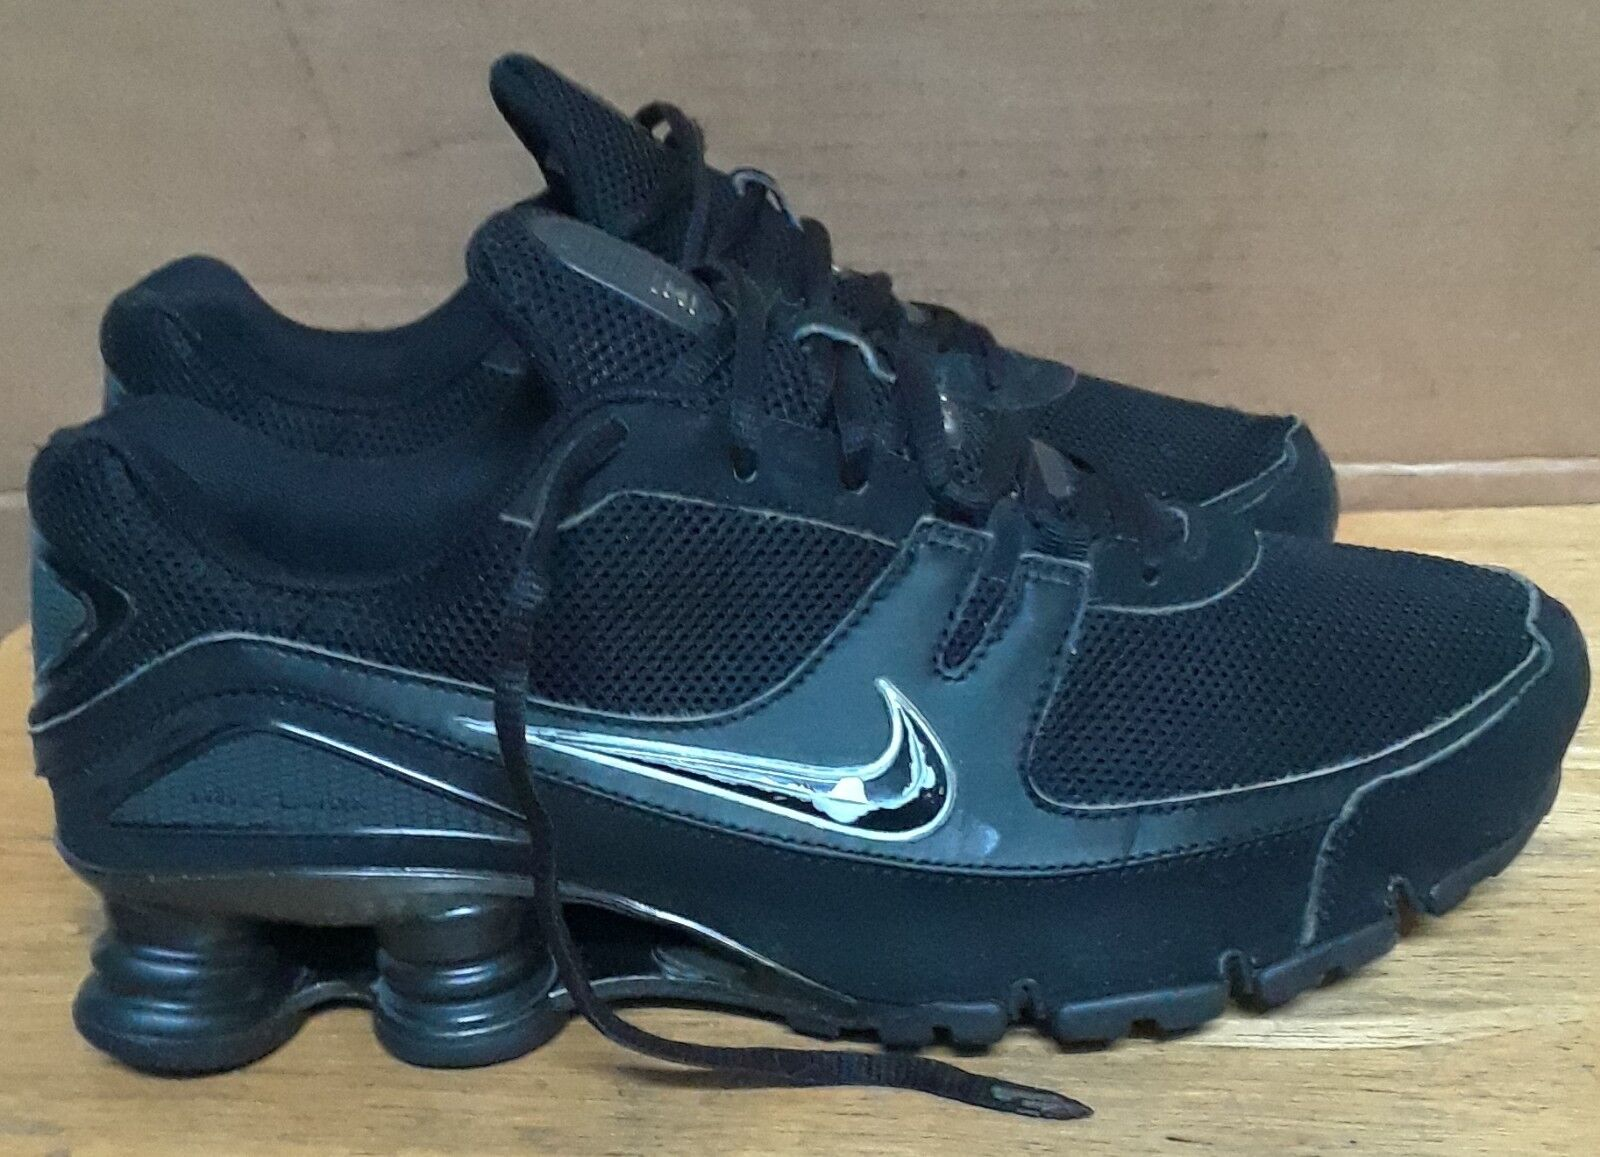 Nike Shox Turbo 316872-006 Men's Running Black shoes. Sz 9